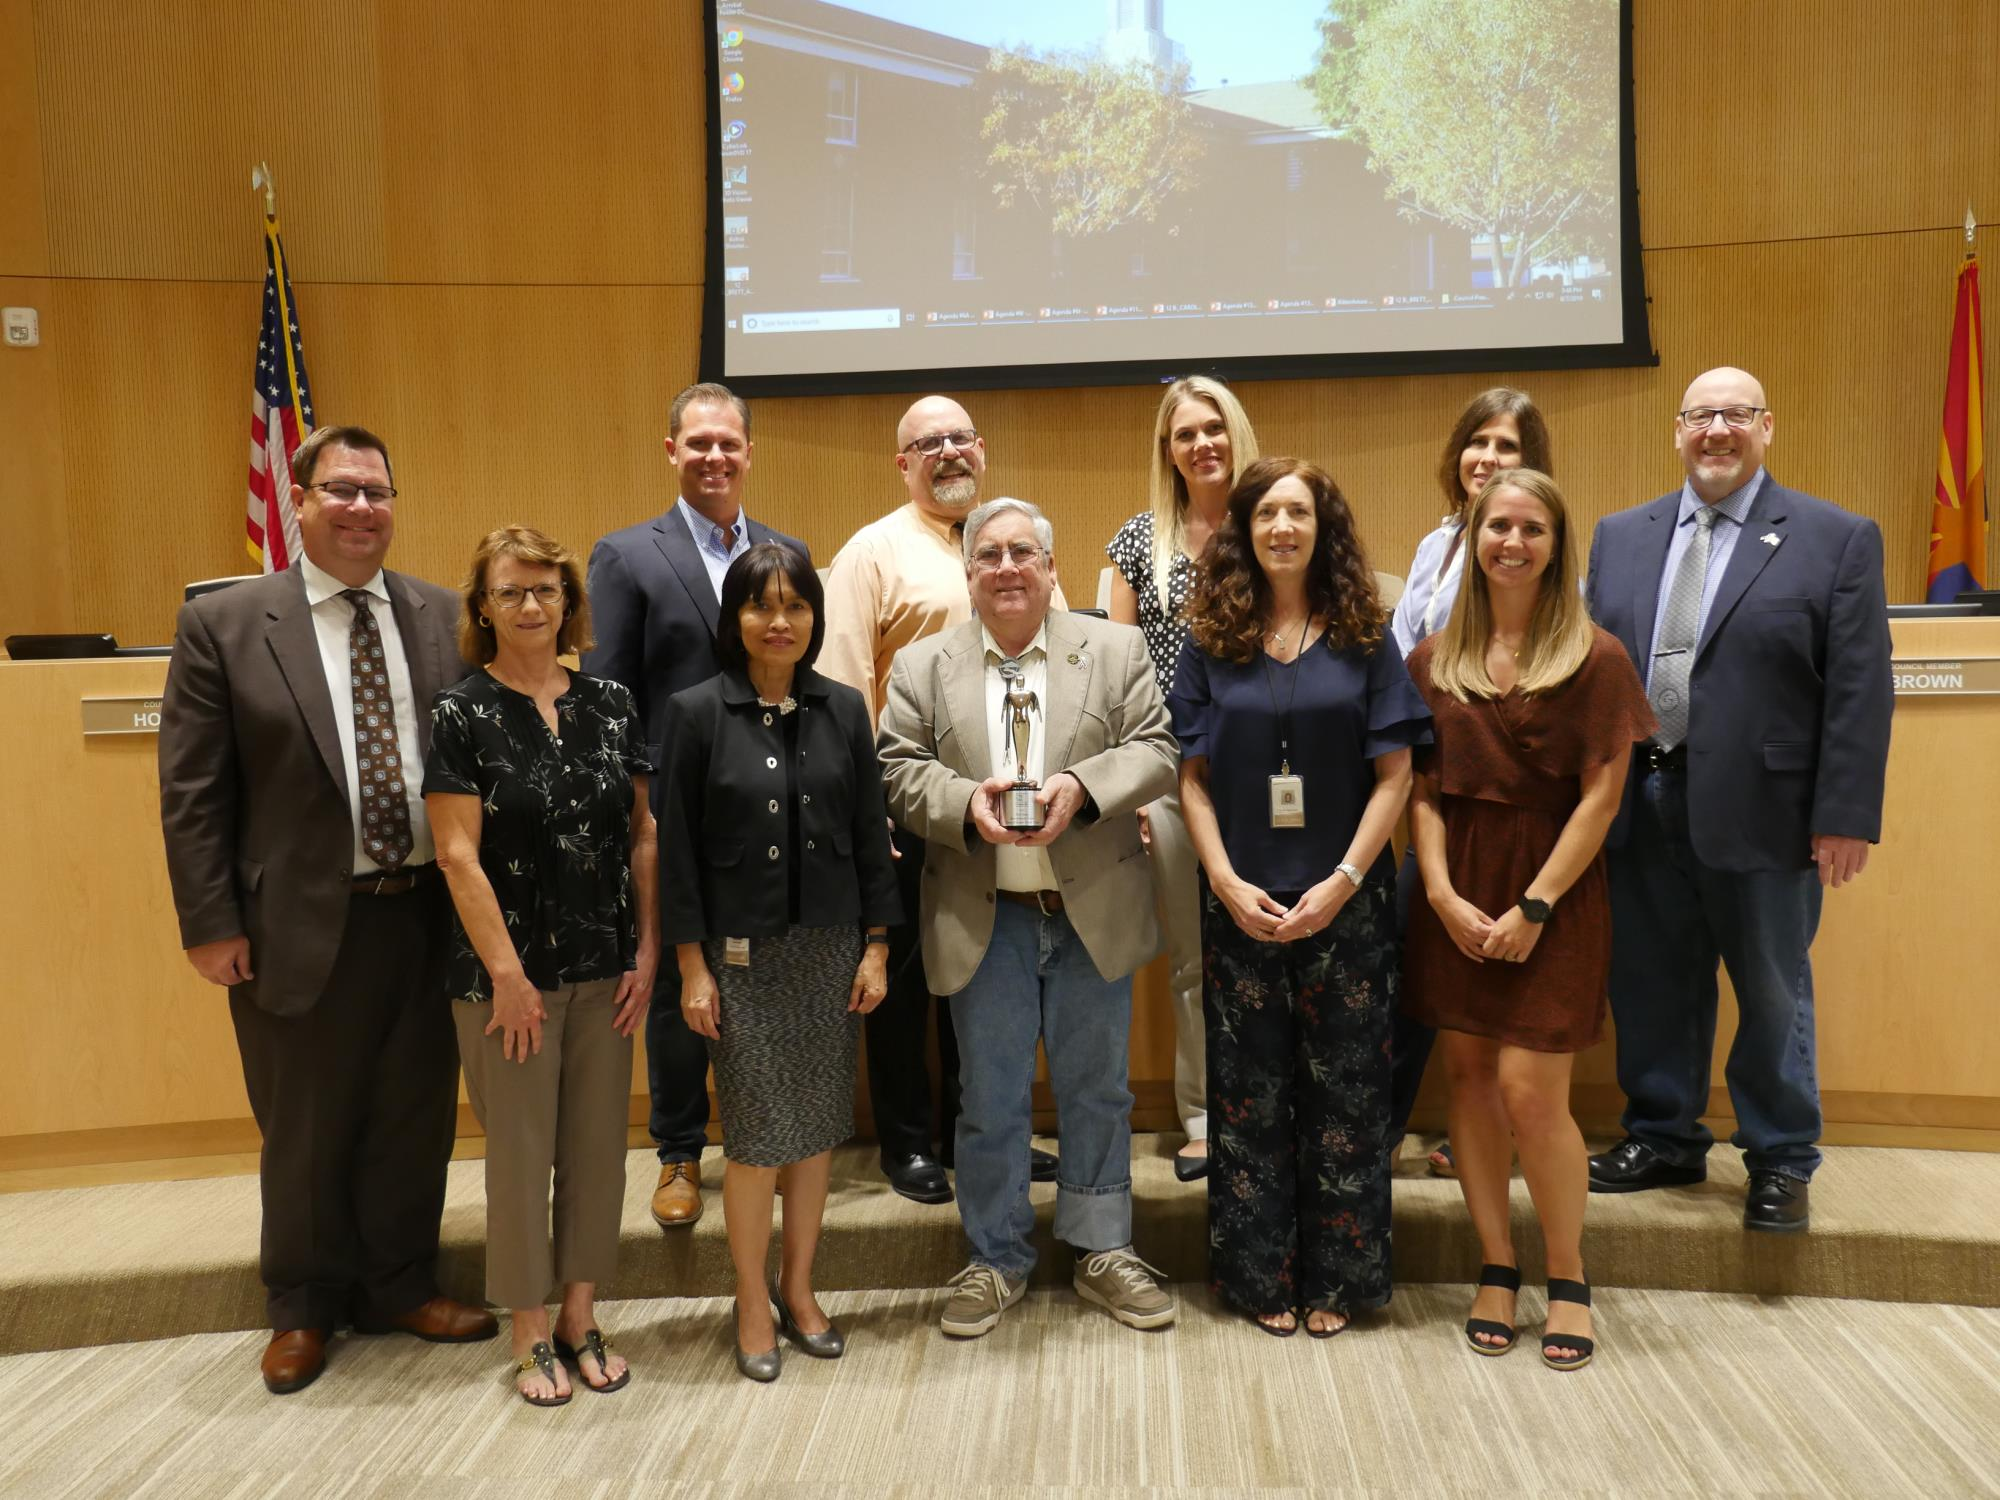 Town of Queen Creek Receives the Silver Telly Award